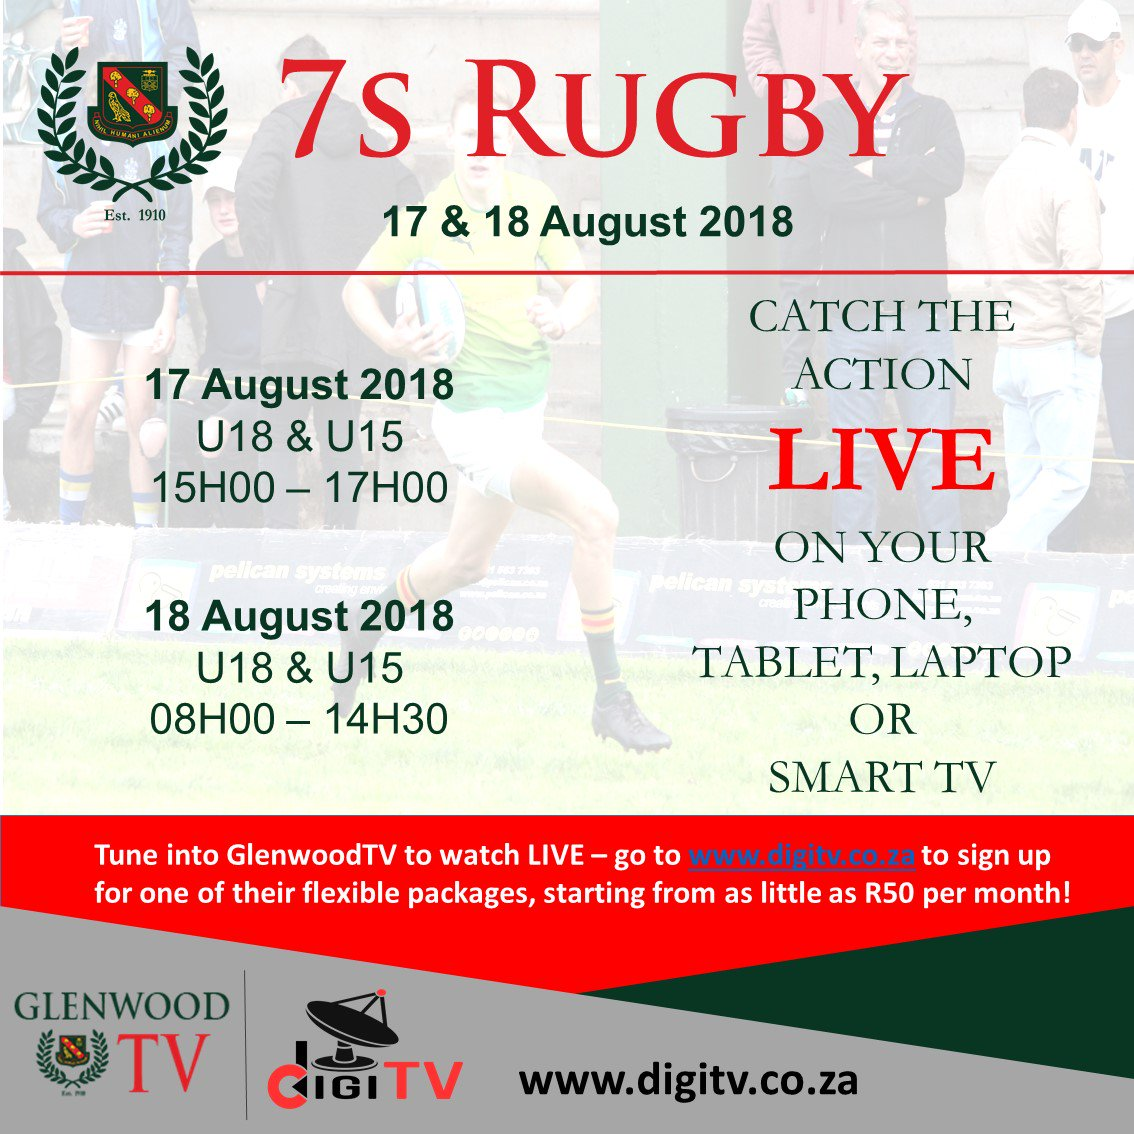 @glenwoodhigh Rugby 7s Tournament takes place 17 &amp; 18 August. Catch all the action on Dixon&#39;s field live on  http://www. digitv.co.za  &nbsp;     https:// issuu.com/hannelieerasmu s/docs/7s_festival_2018 &nbsp; … <br>http://pic.twitter.com/lgsoUgXLdK